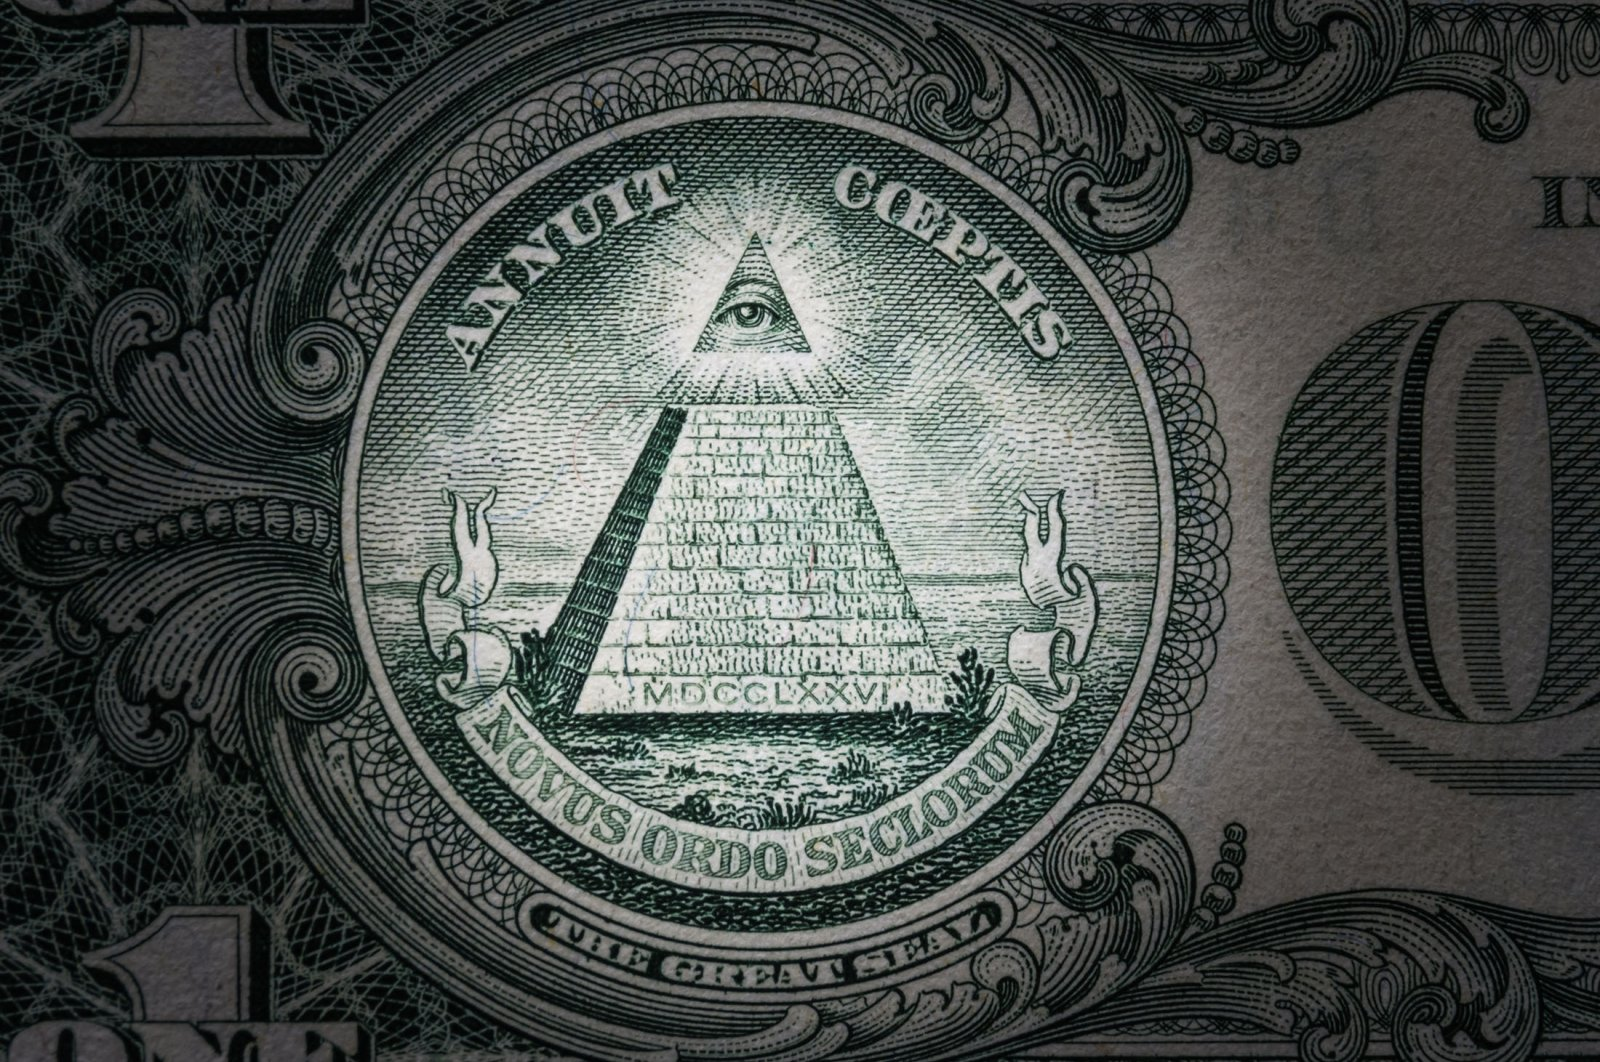 """The Eye of Providence, a symbol of Freemasonry, can be seen on the $1 bill accompanied with the phrase """"Novus ordo seclorum"""" (New world order). (Shutterstock Photo)"""